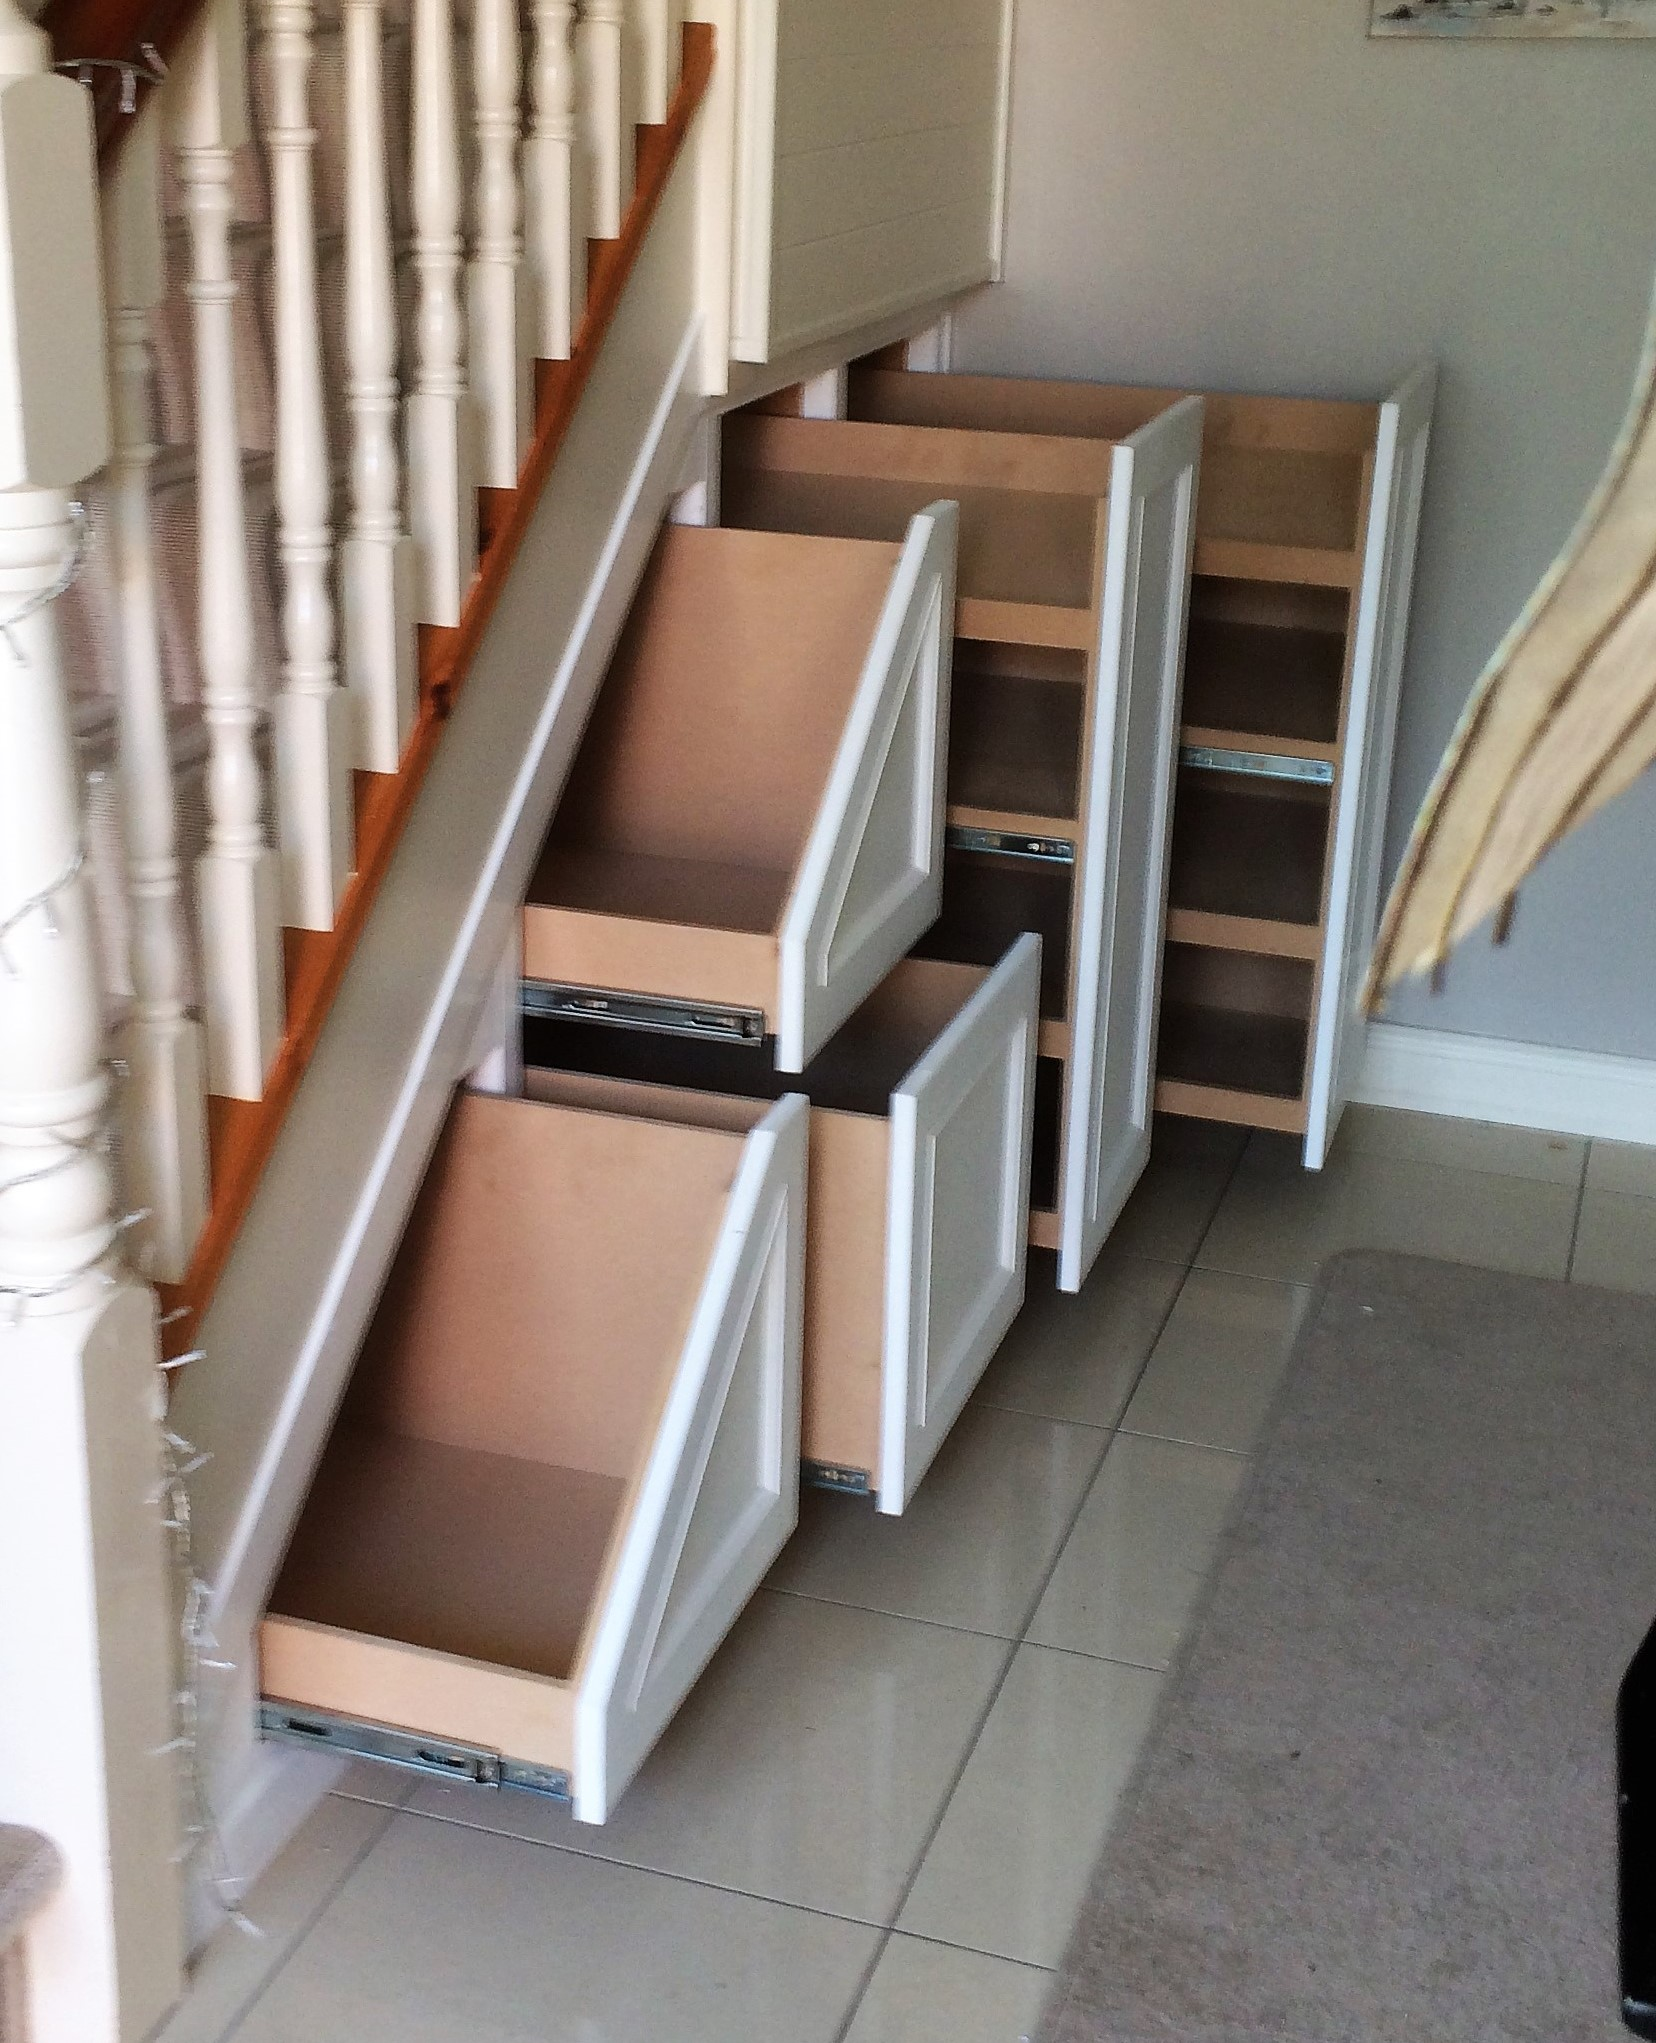 Three drawers with double shoe rack